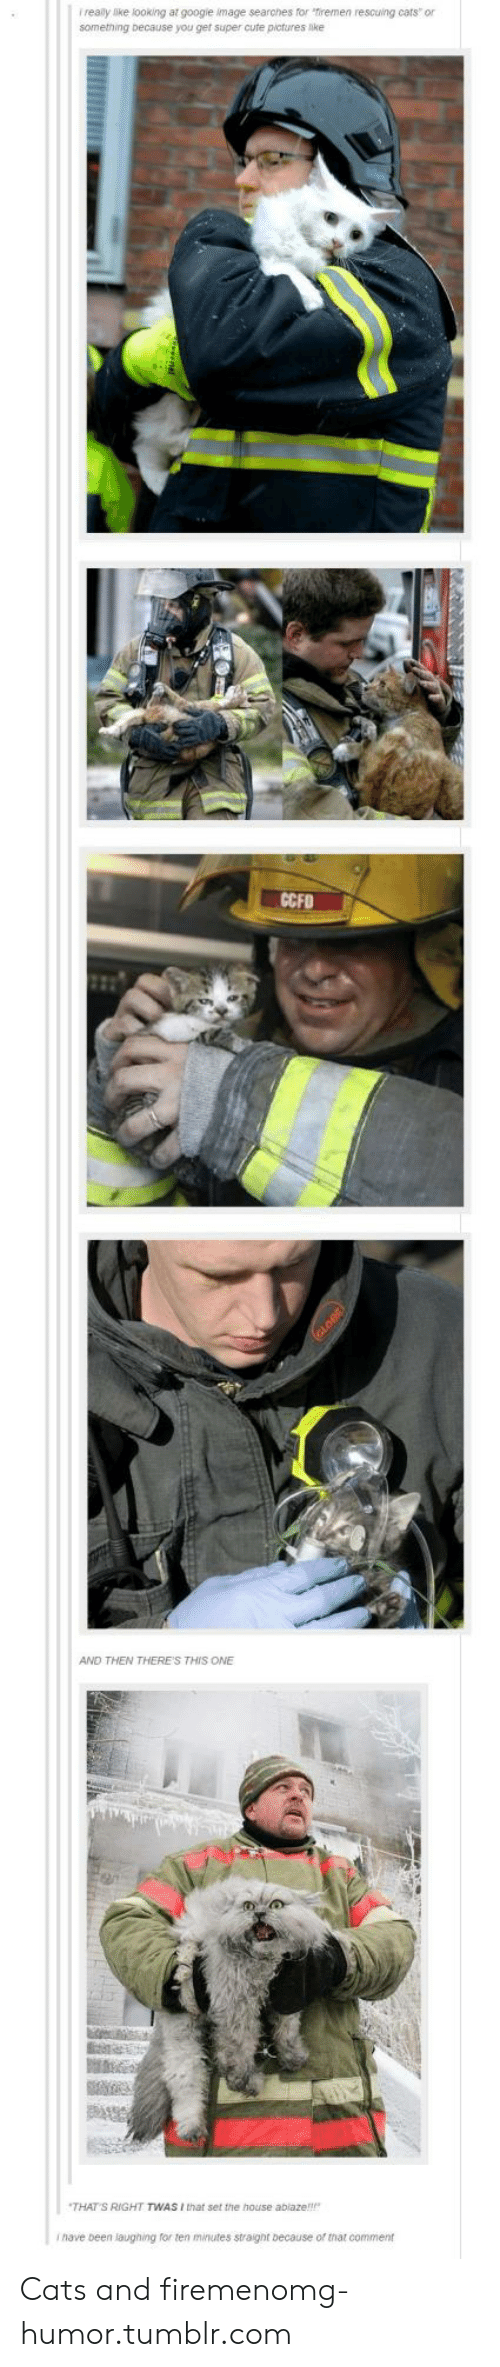 Googie: f realy like looking at googie mage searches for iremen rescuing cars or  something because you gef super cute pictures nke  CCFD  AND THEN THERE'S THIS ONE  THAT'S RIGHT TWAS I that set the house abiaze!!!  i nave been laughing for ten minutes straignt because or that comment Cats and firemenomg-humor.tumblr.com